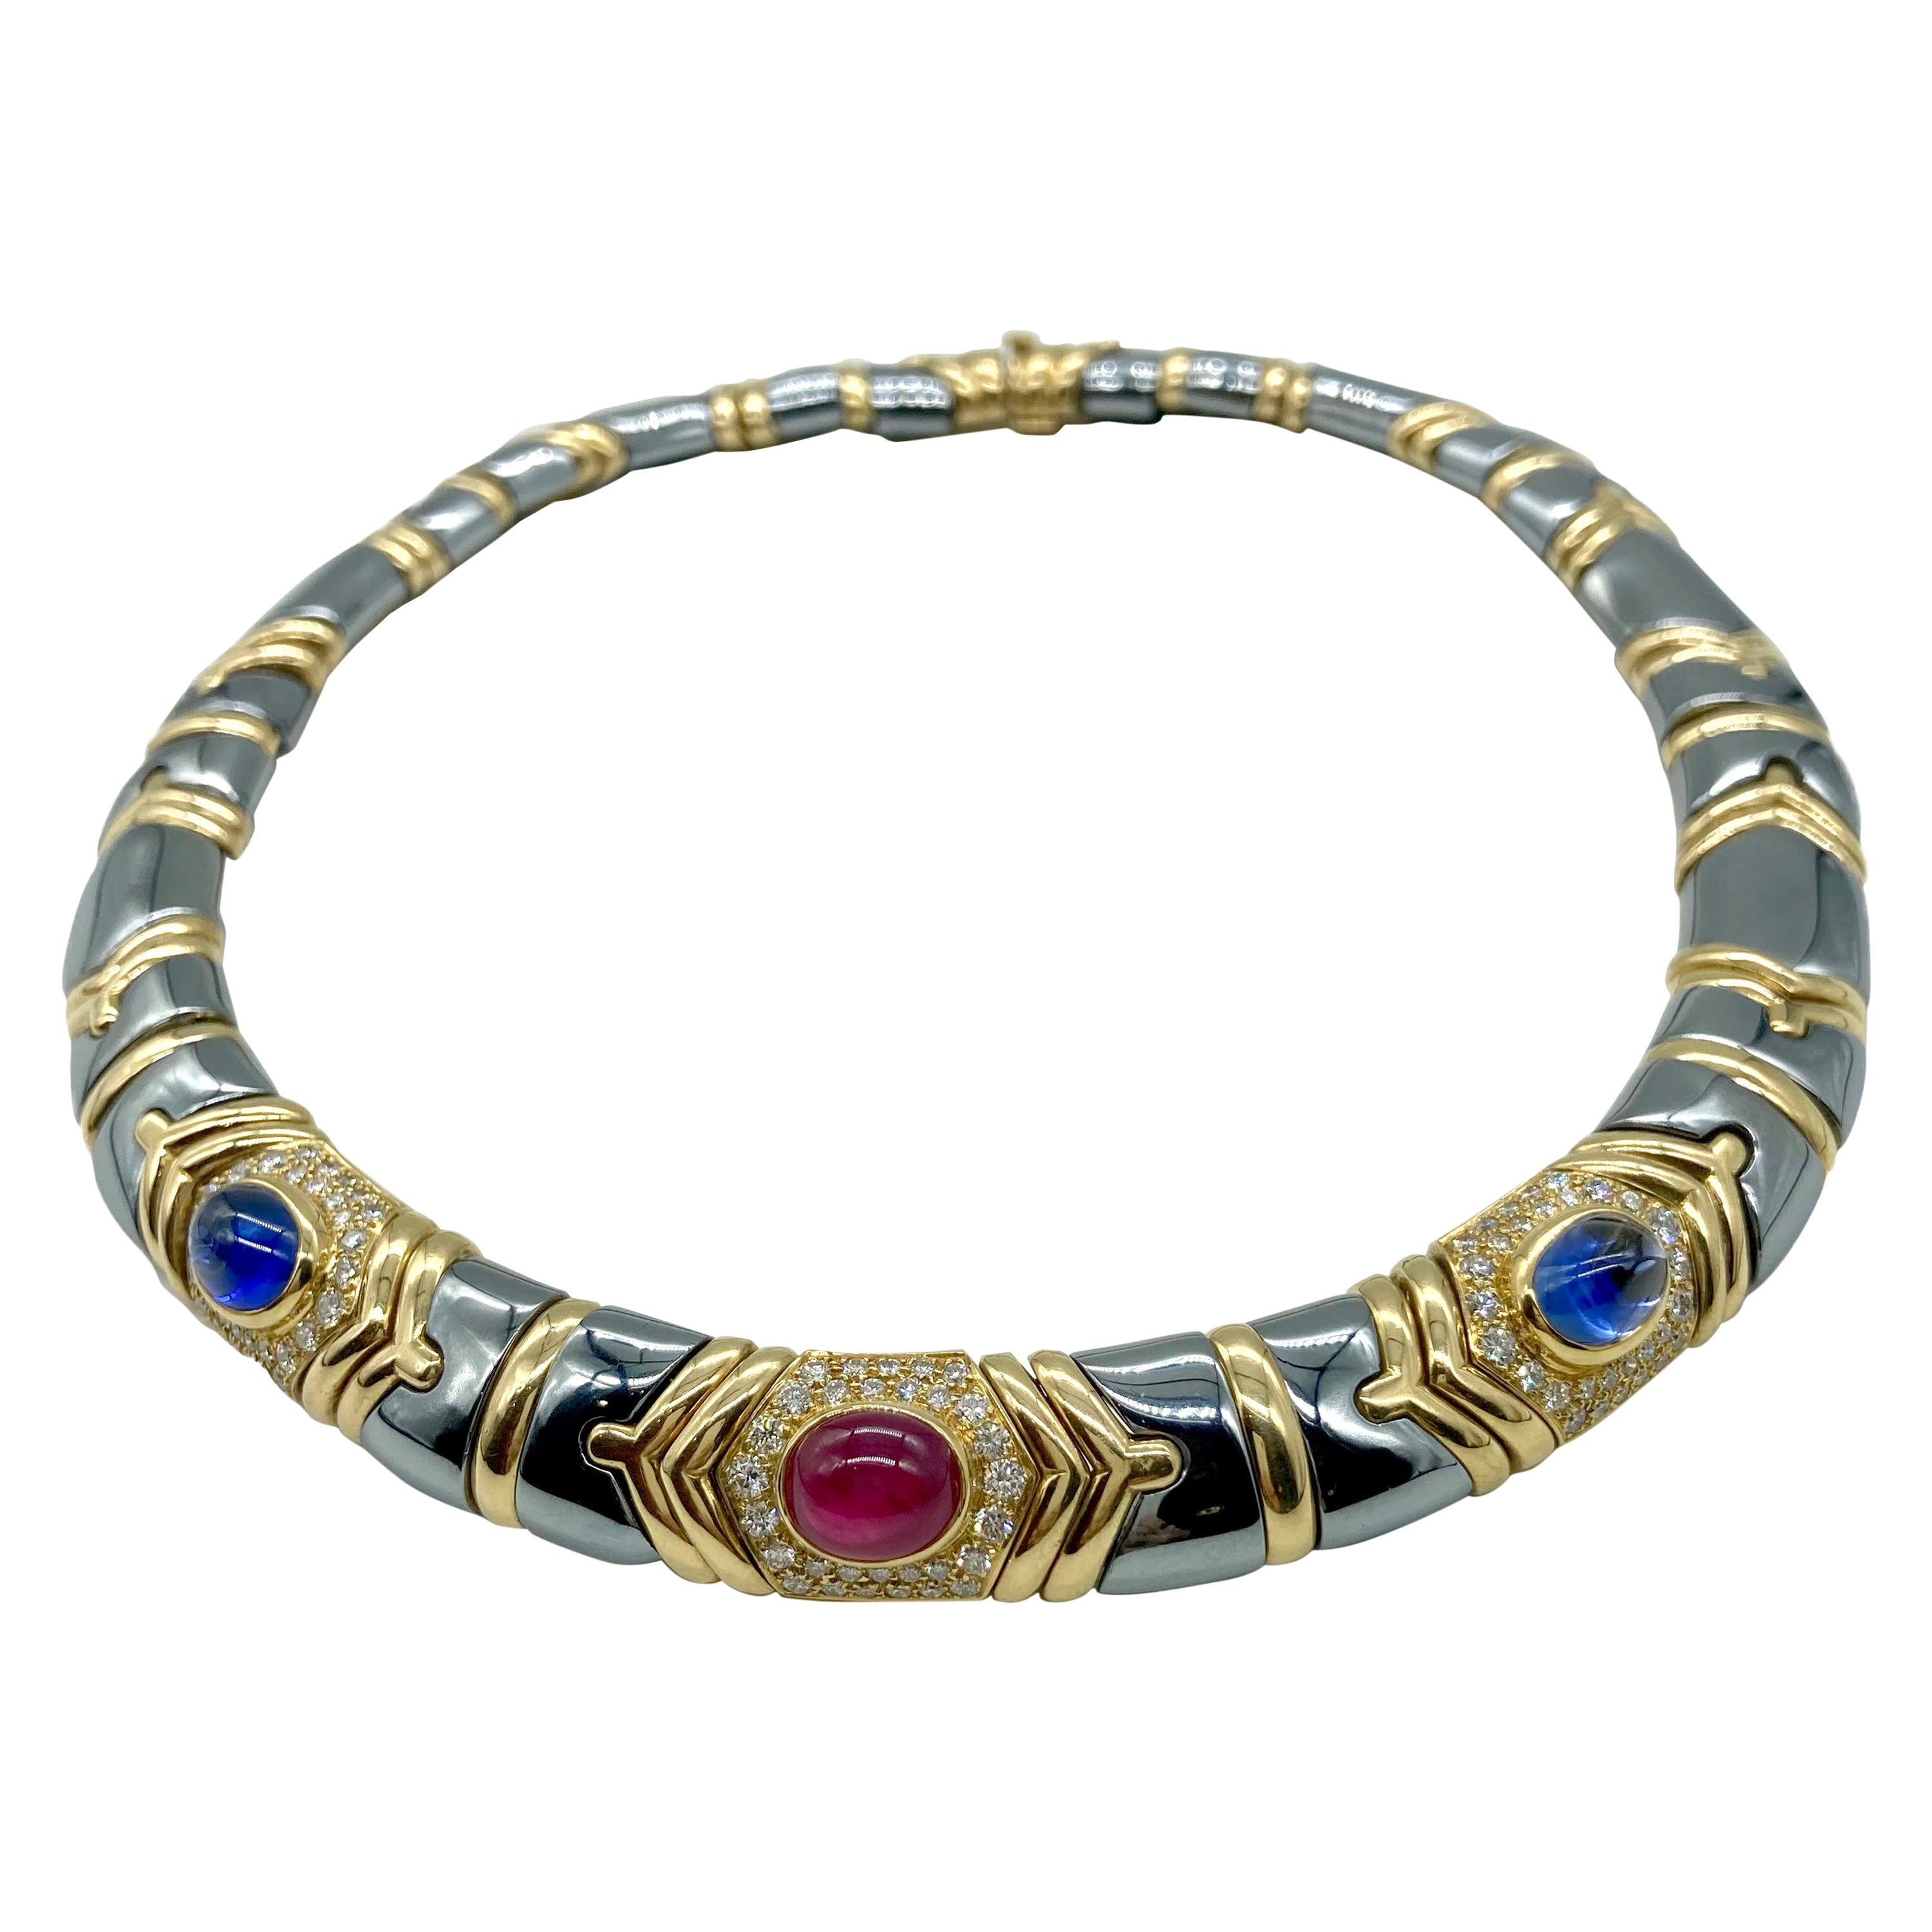 Bulgari Hematite, Diamond, Ruby, and Sapphire Necklace